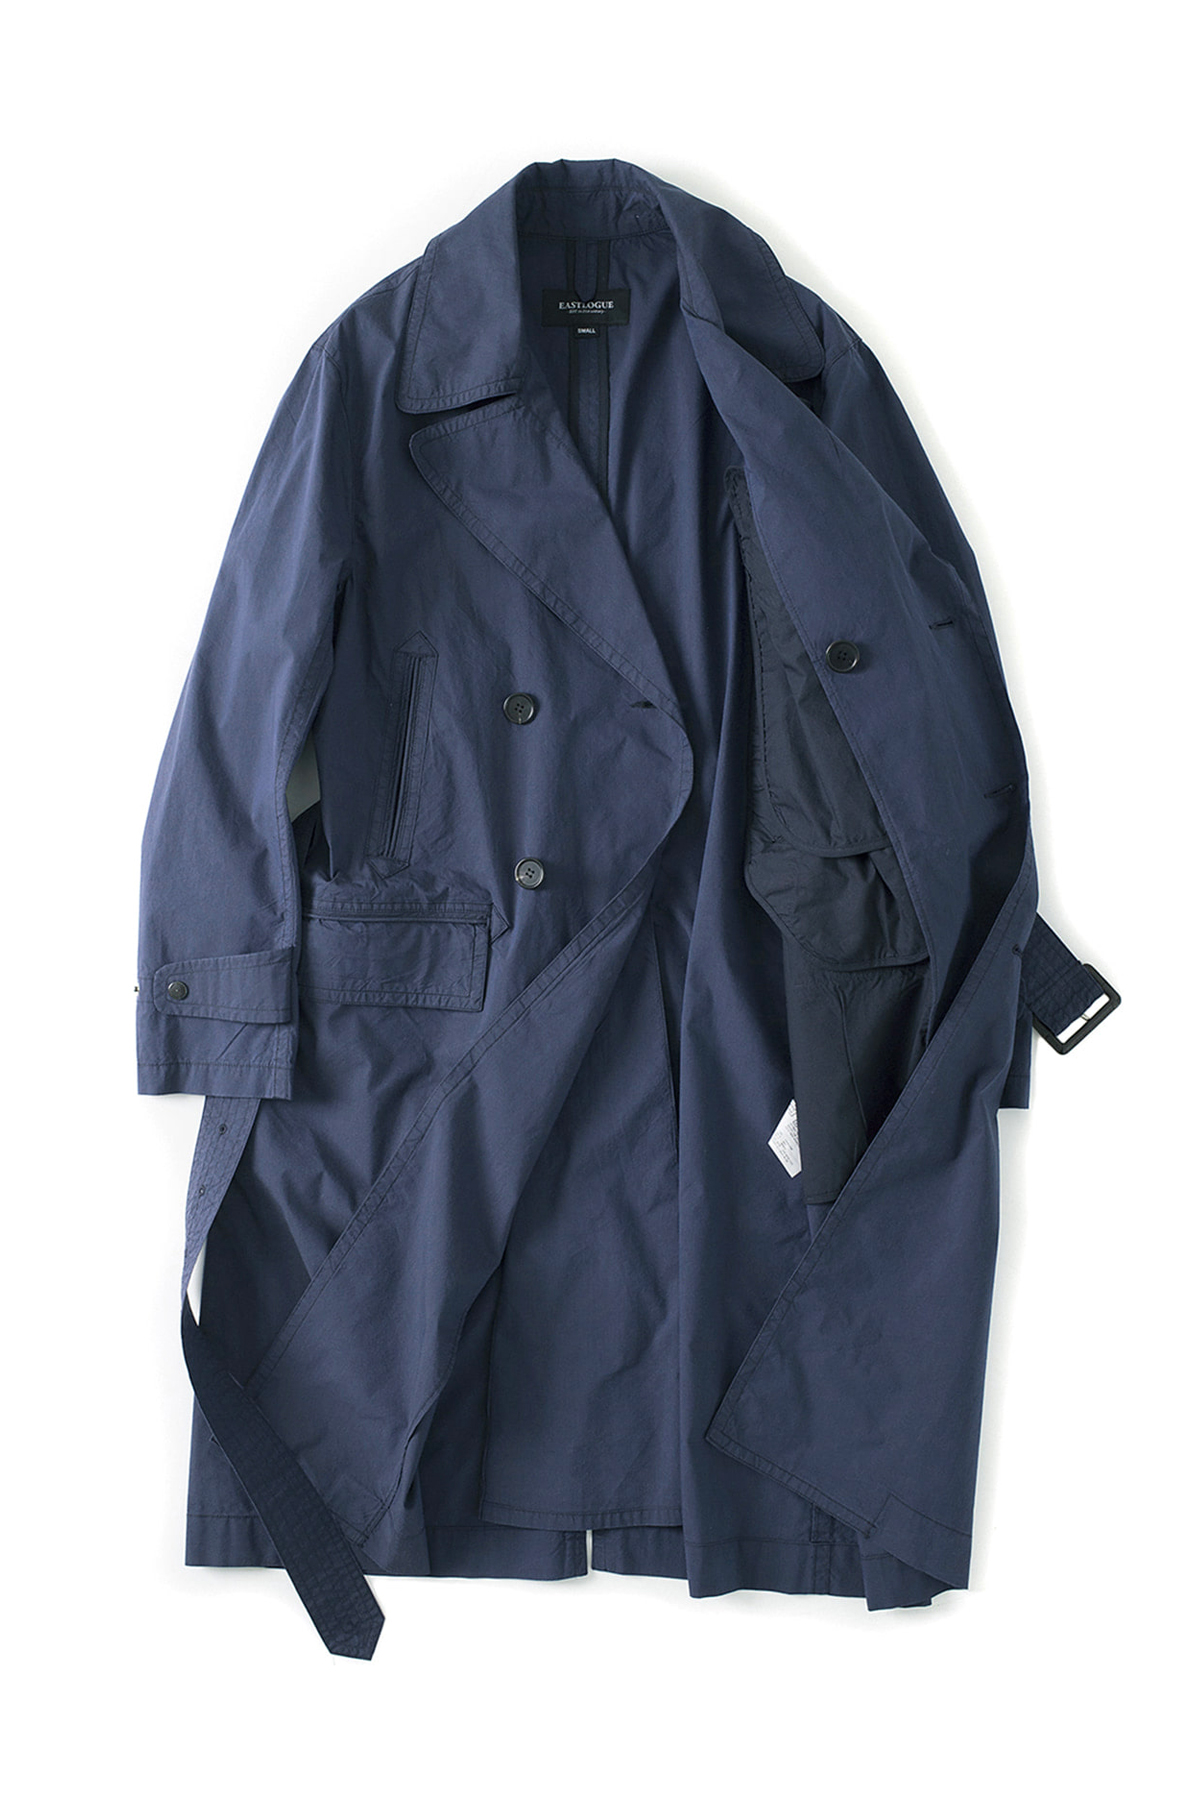 Eastlogue : Patrol Coat (Navy)